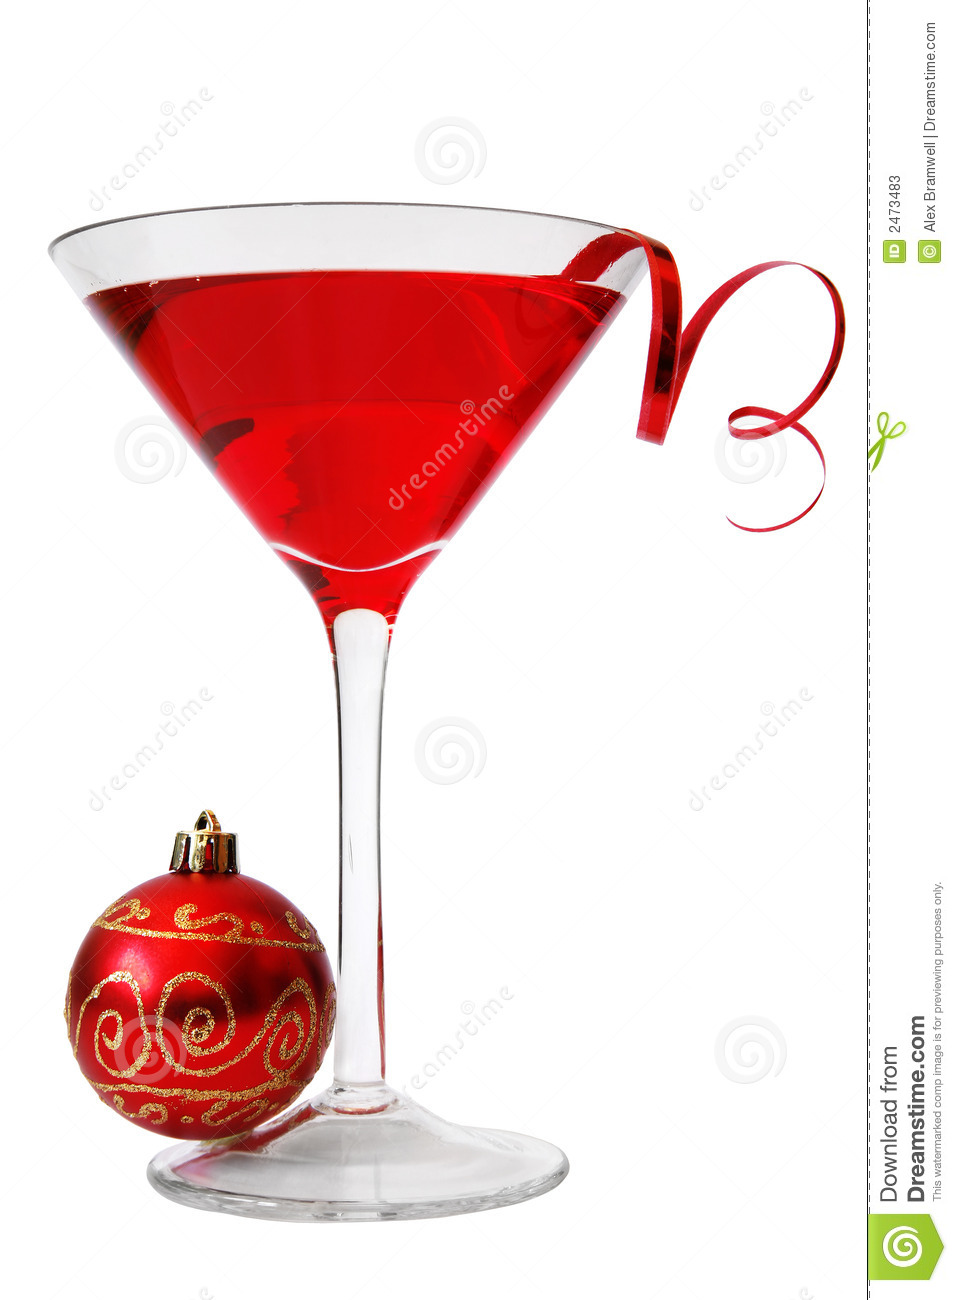 Clip art martini holiday drink clipart clipart suggest for Christmas in a glass cocktail